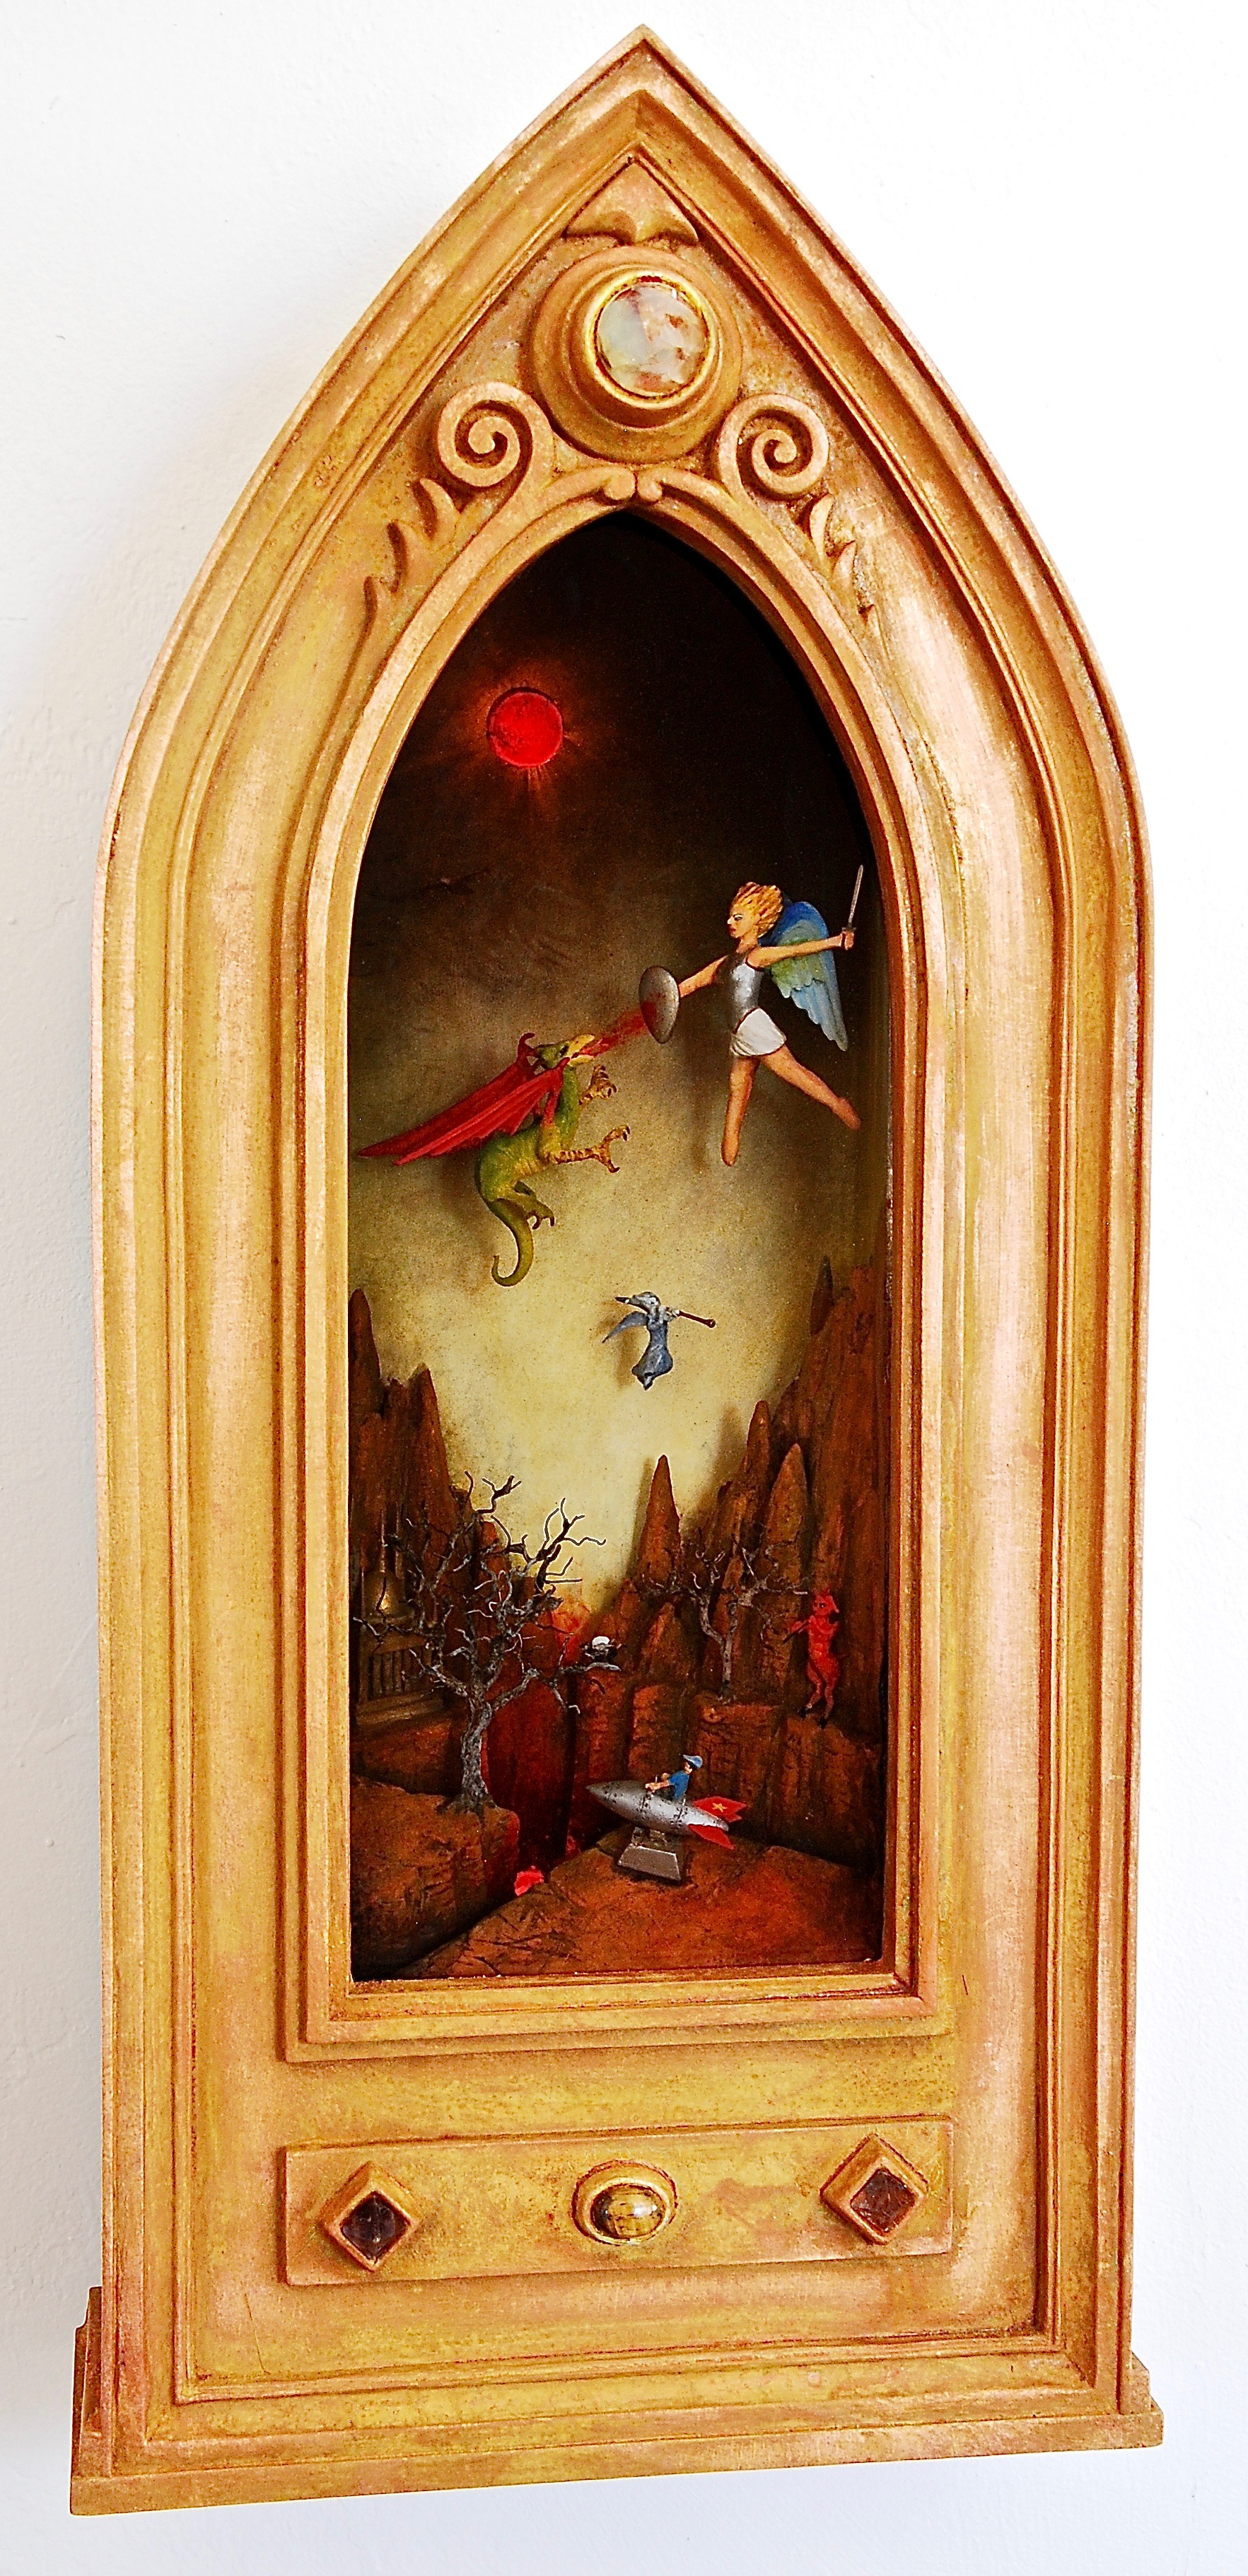 """Thomas Coffin - Little Johnny's Rocket Ride, 18""""h x 10""""w x 4 1/2""""d, mixed media 3-d diorama encased in acrylic resin, handmade wood frame, copper leaf"""